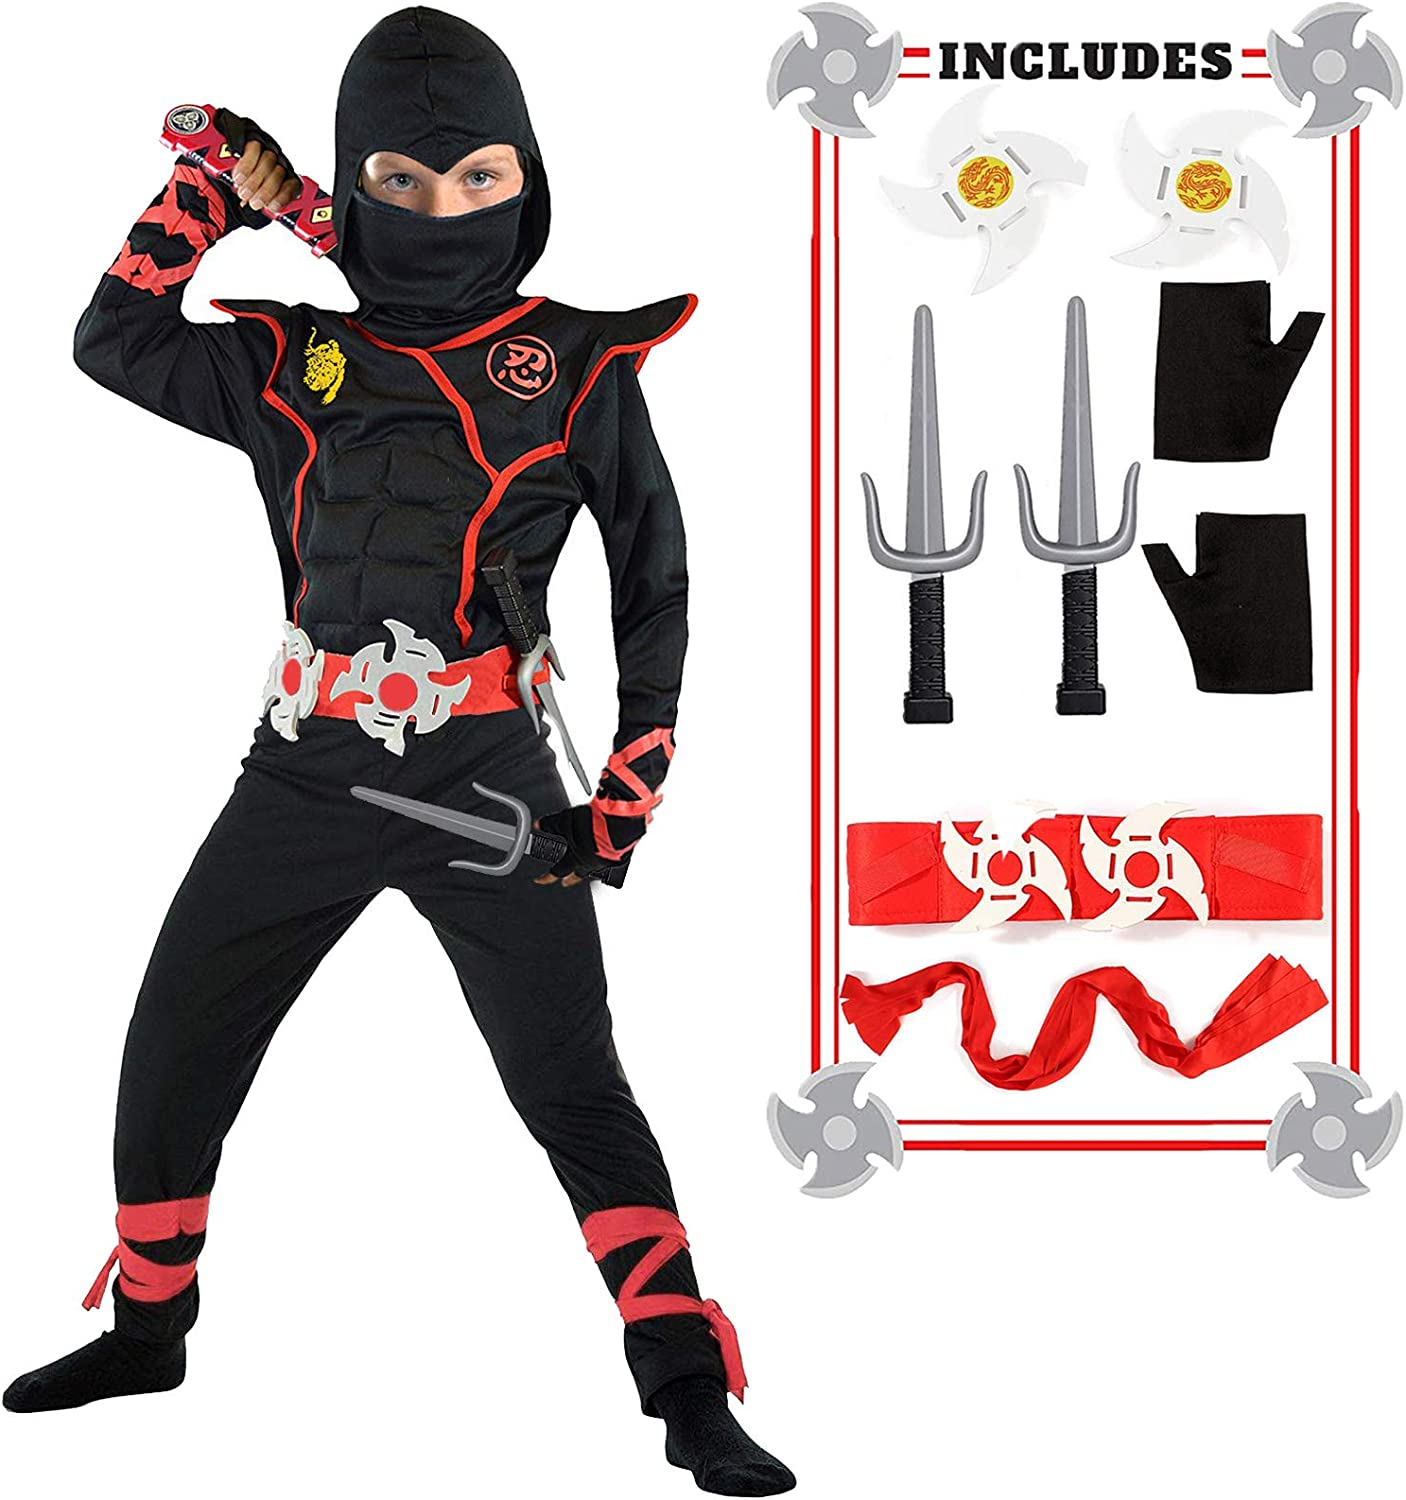 Ninja Costume Boy Halloween Kids Costume Boy Ninja Muscle Costume with Ninja Foam Accessories Best Children Gift